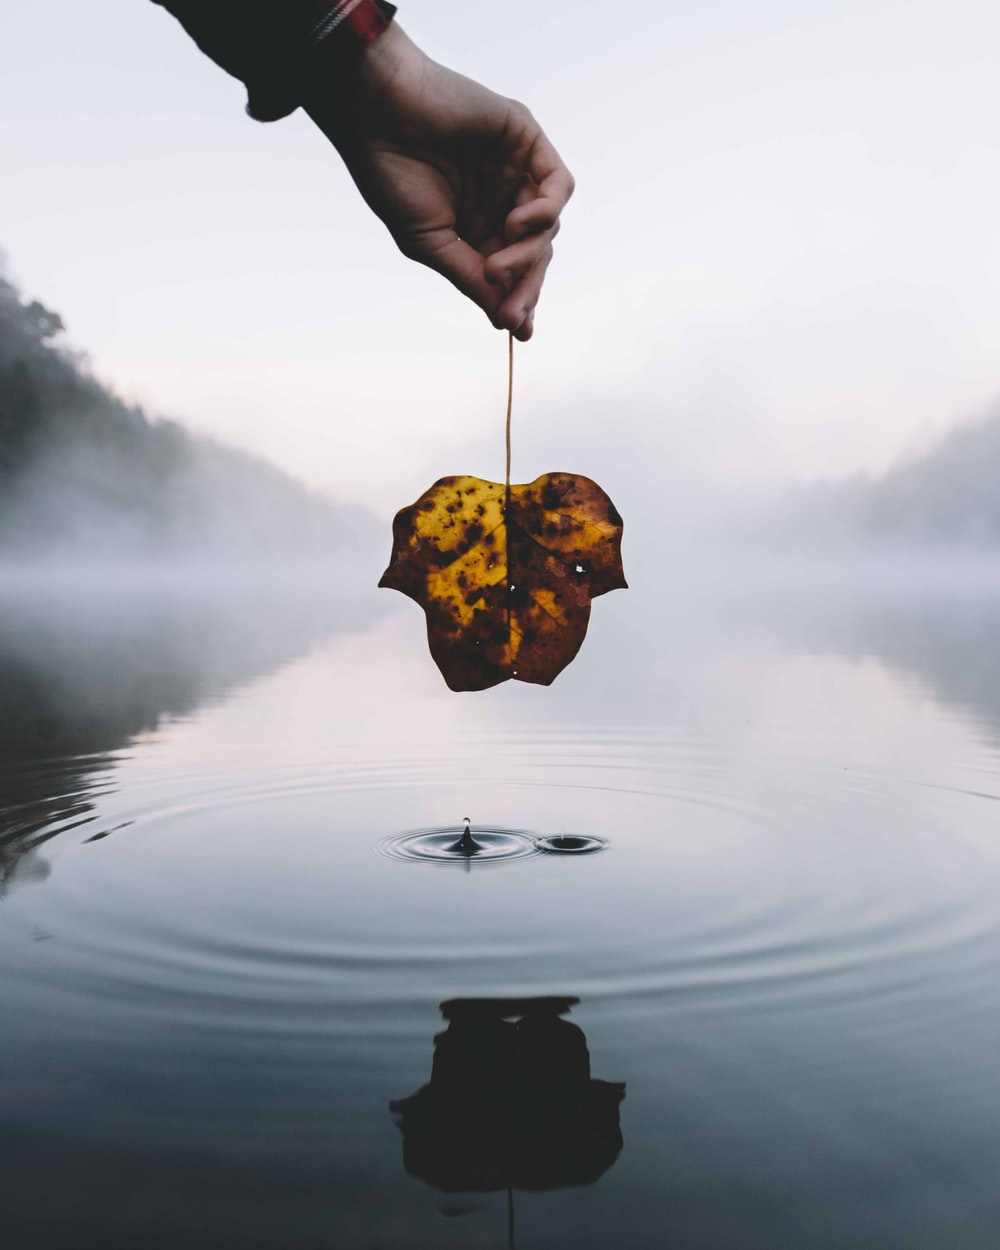 person holding withered leaf above body of water